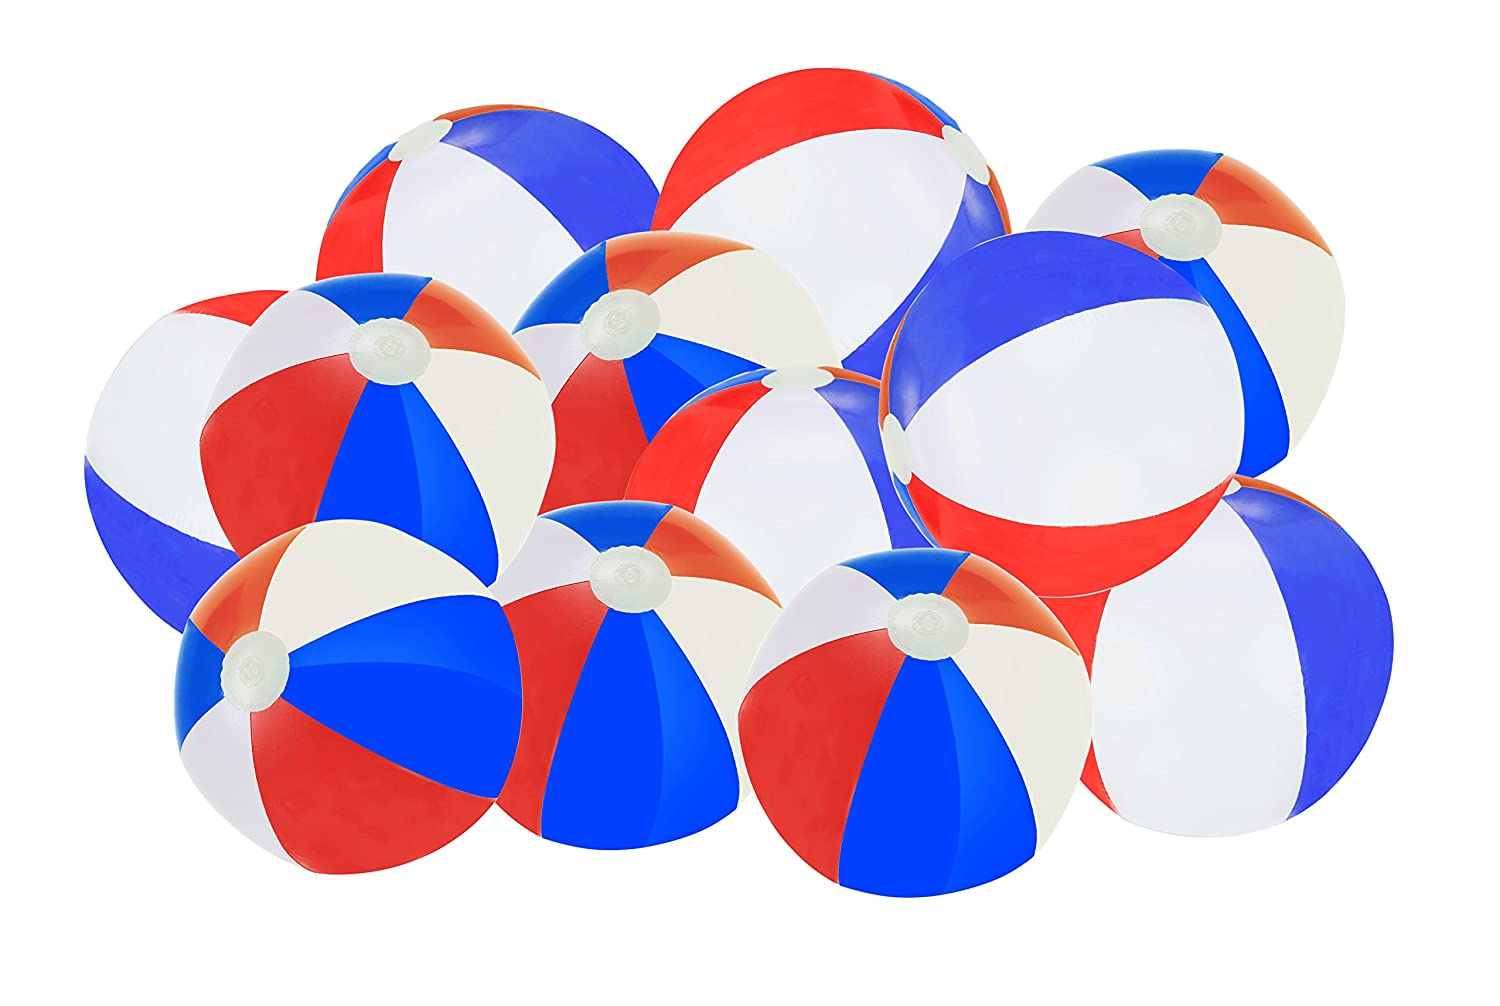 Patriotic Beach Ball Inflates White Pack Of 12 Red And Blue Beach Balls SNInc.